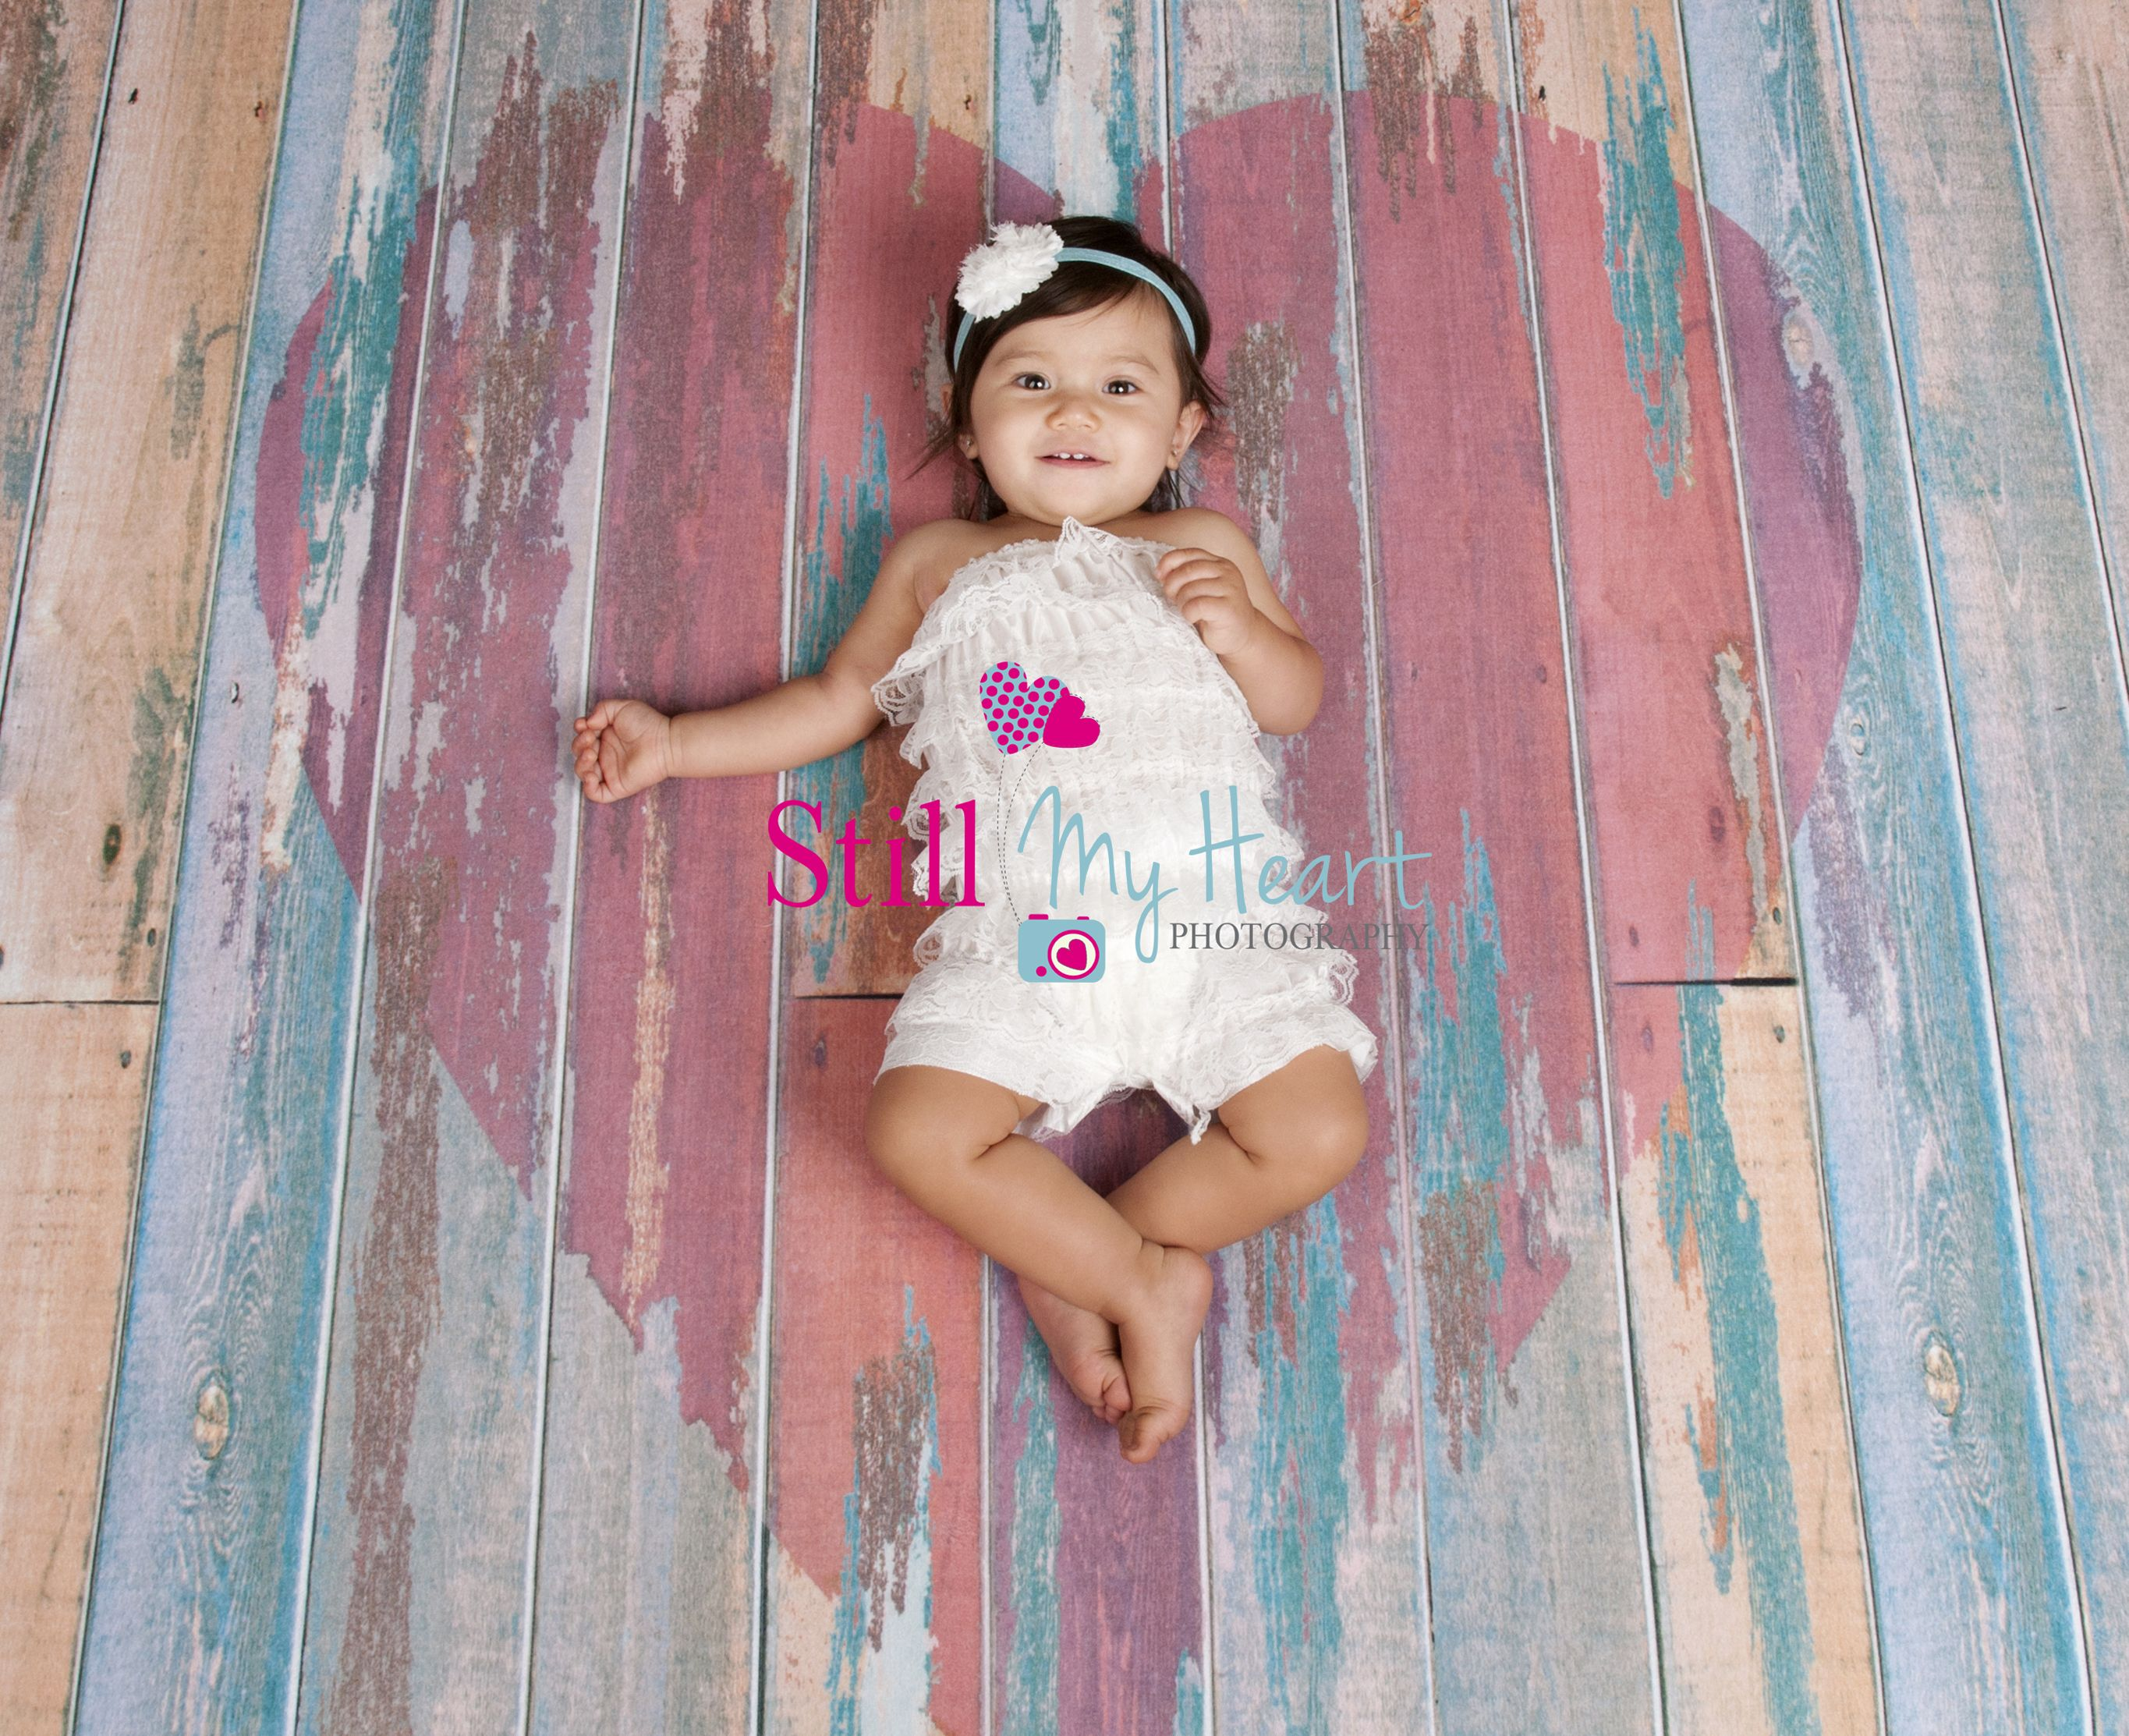 Our Distressed Heart Planks Backdrop / Floordrop is perfect for newborn photos or even Valentine's Day portraits!